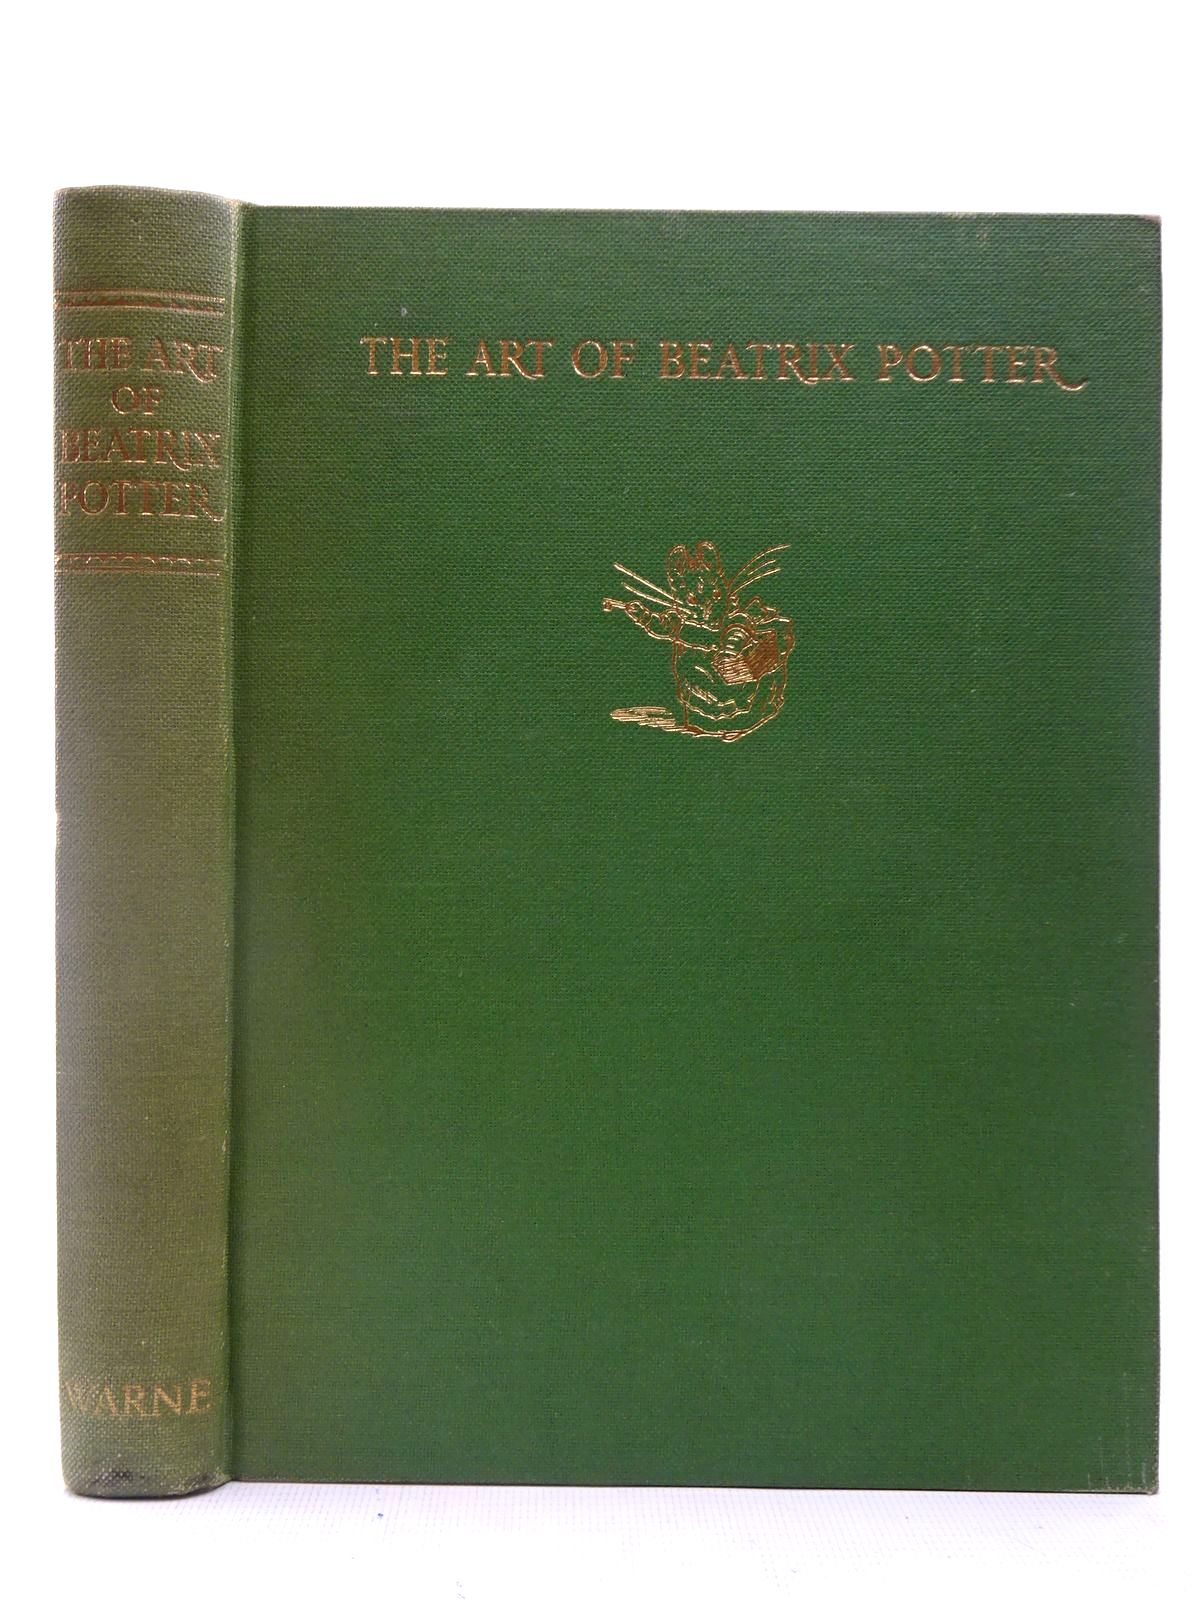 Photo of THE ART OF BEATRIX POTTER written by Linder, Leslie<br />Moore, Anne Carroll<br />Linder, Enid<br />Potter, Beatrix illustrated by Potter, Beatrix published by Frederick Warne &amp; Co Ltd. (STOCK CODE: 2127271)  for sale by Stella & Rose's Books